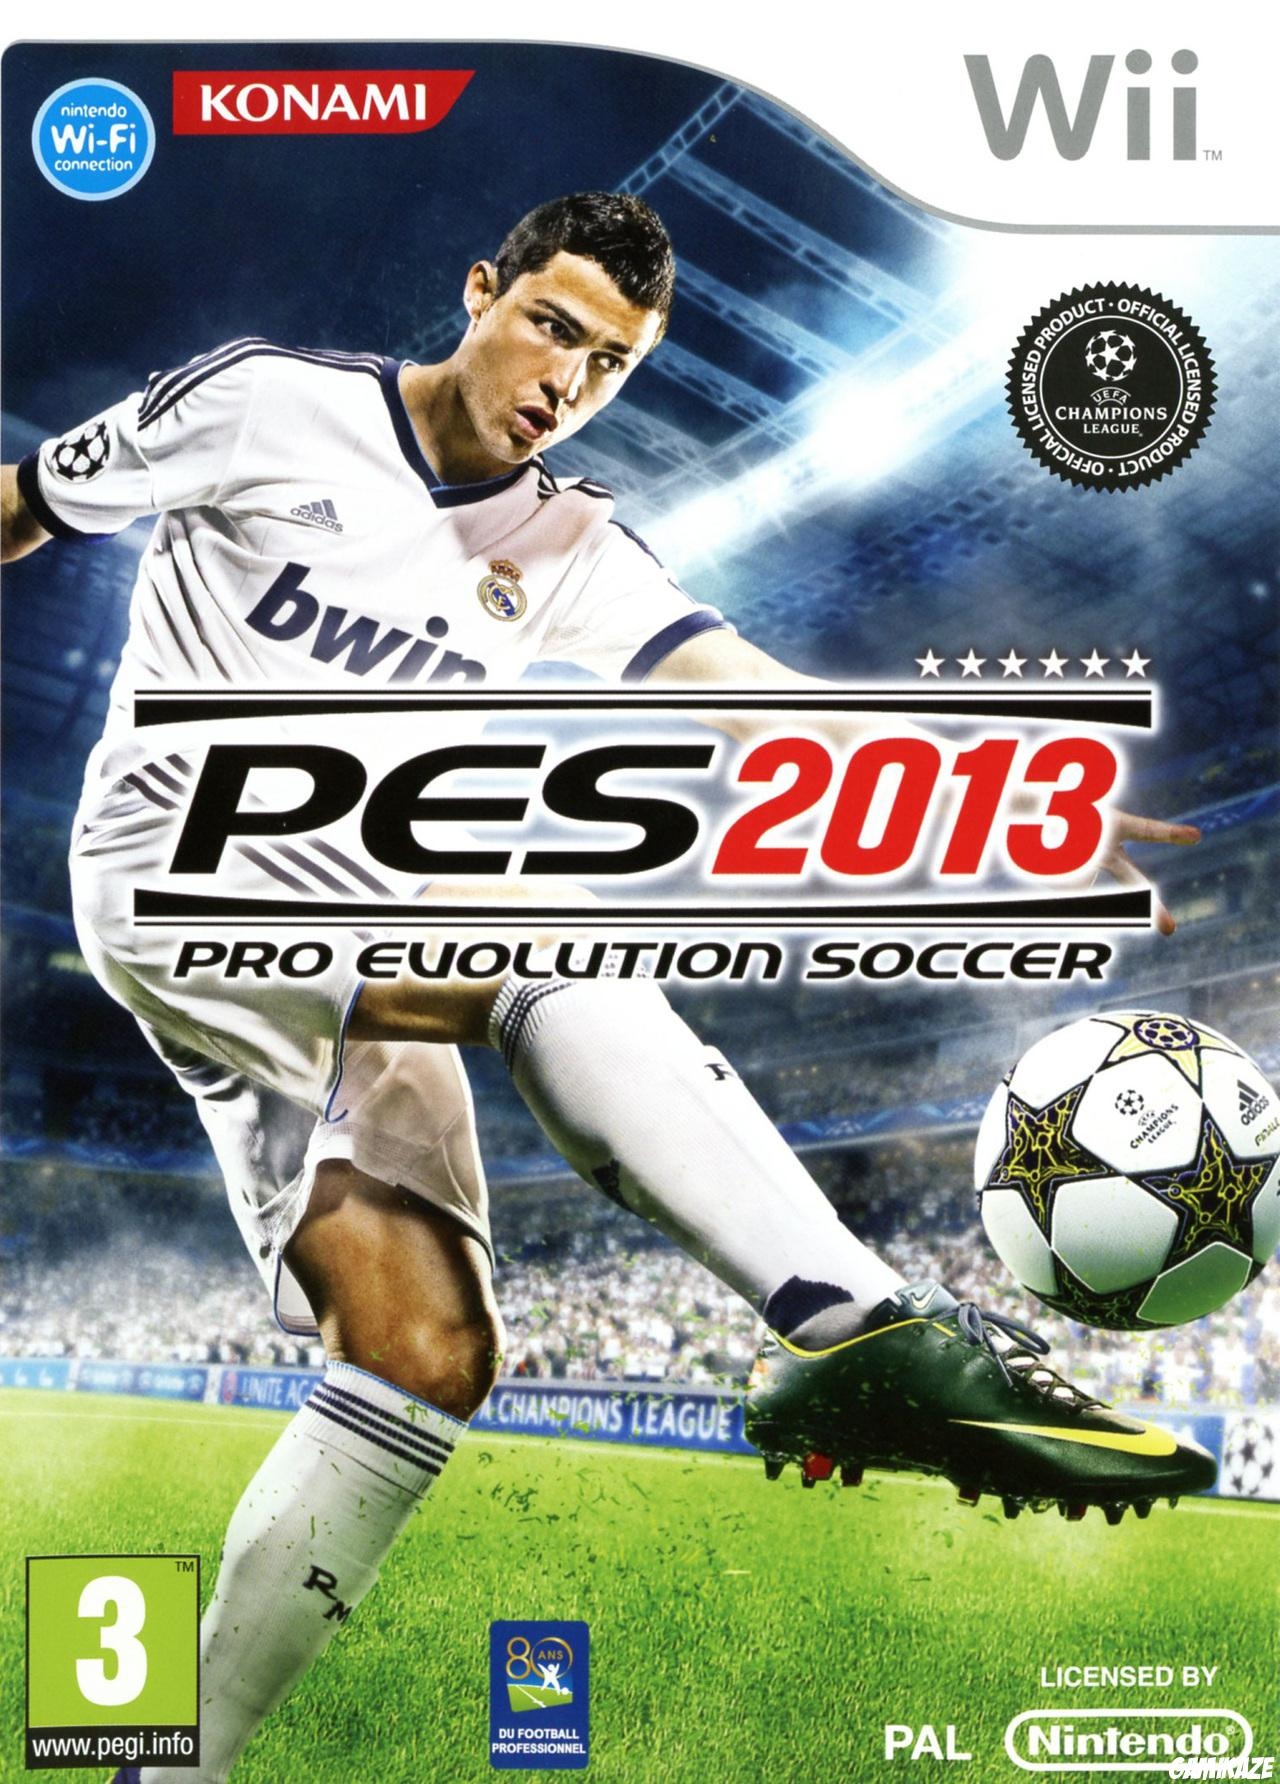 cover FIFA 13 wii